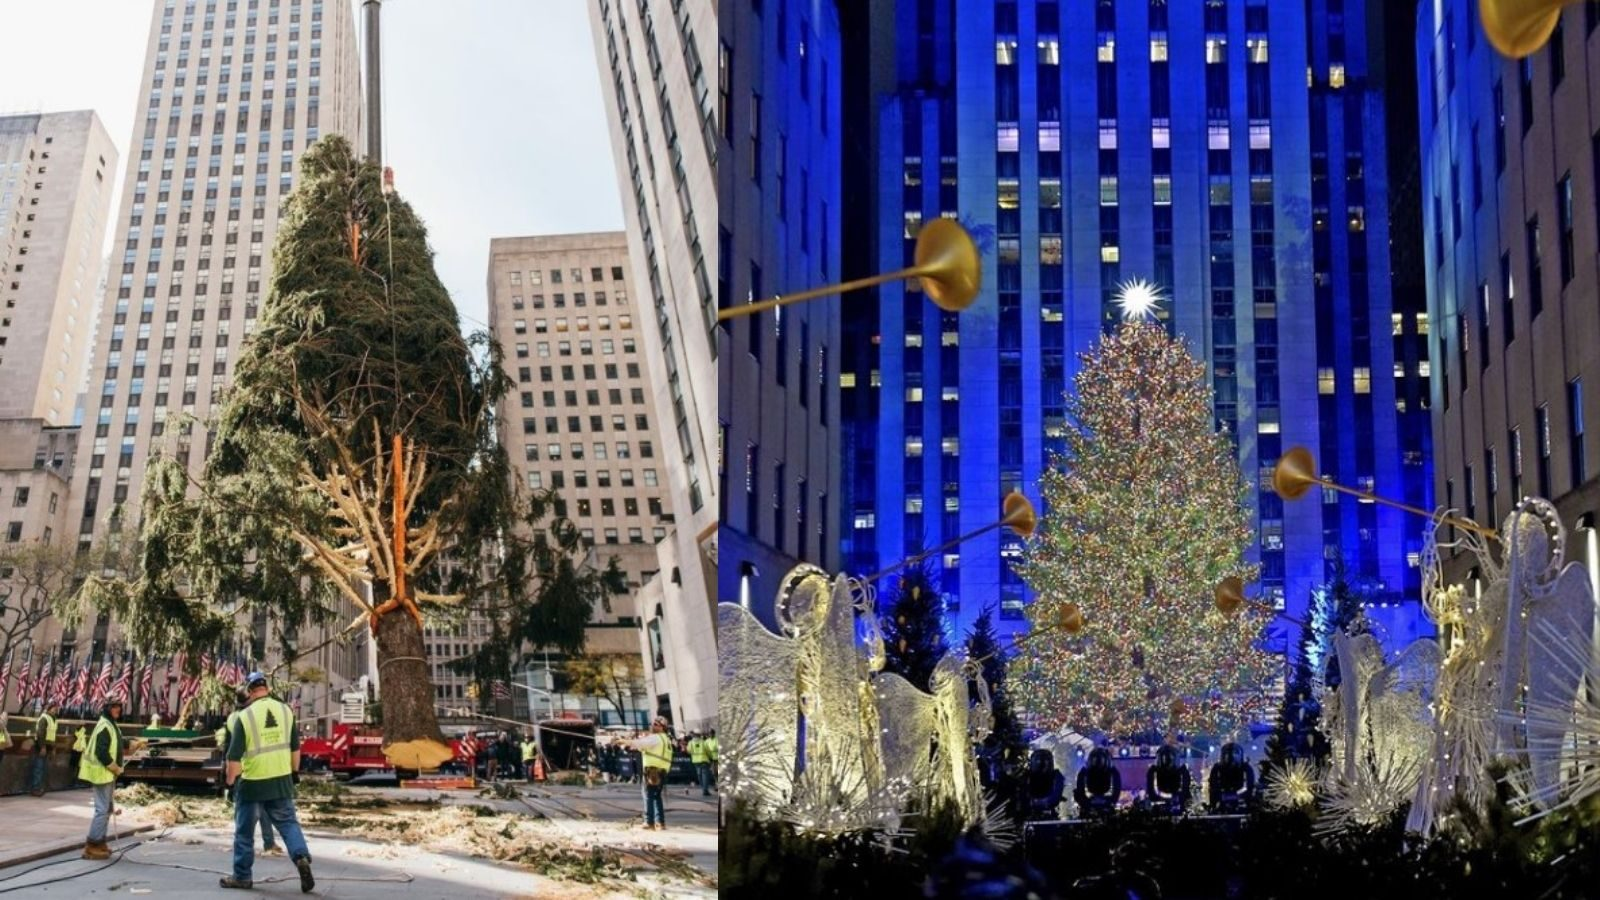 sccbgcy4ajd3vm https www snopes com fact check rockefeller christmas trees real